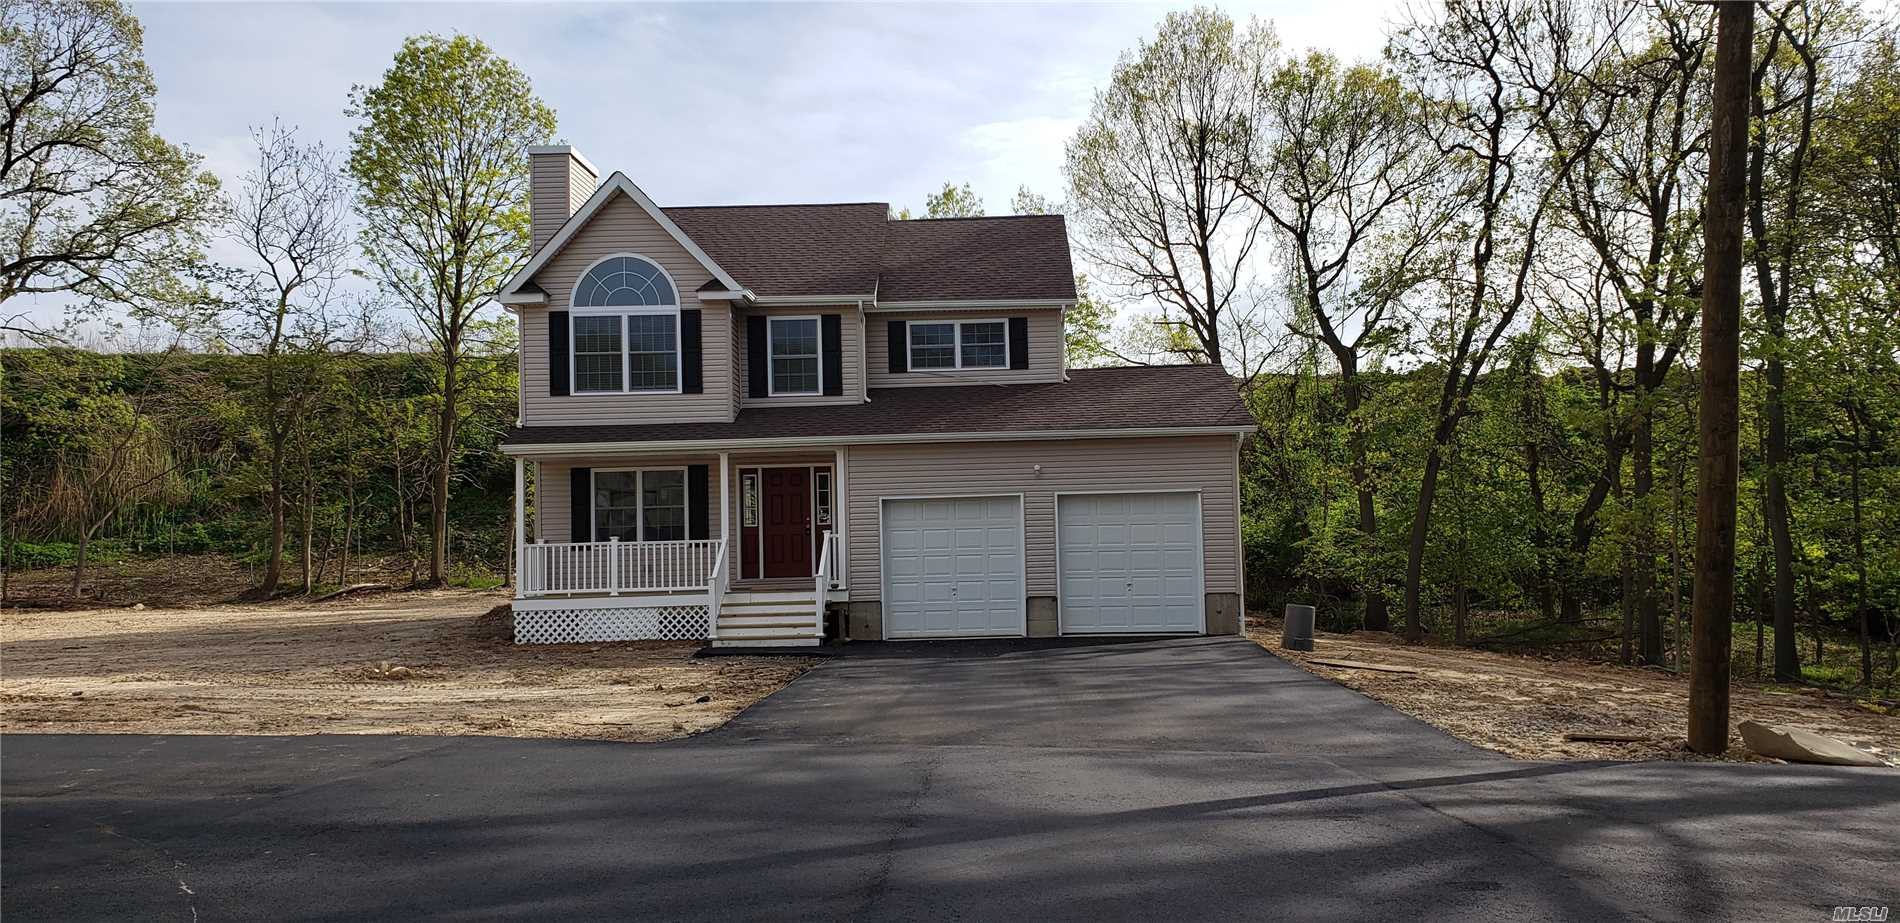 Beautiful Brand New Construction With Attention To Detail! Open Floor Plan With Gorgeous Granite Kitchen And Plenty Of Room For Entertaining. This Home Boasts Crown Moulding, Wood Flooring, Fireplace, All Energy Efficient And Large Full Basement With 8 Ft Ceilings. Absolutely beautiful! *For GPS use Midvale Ave. Port Jefferson Station*